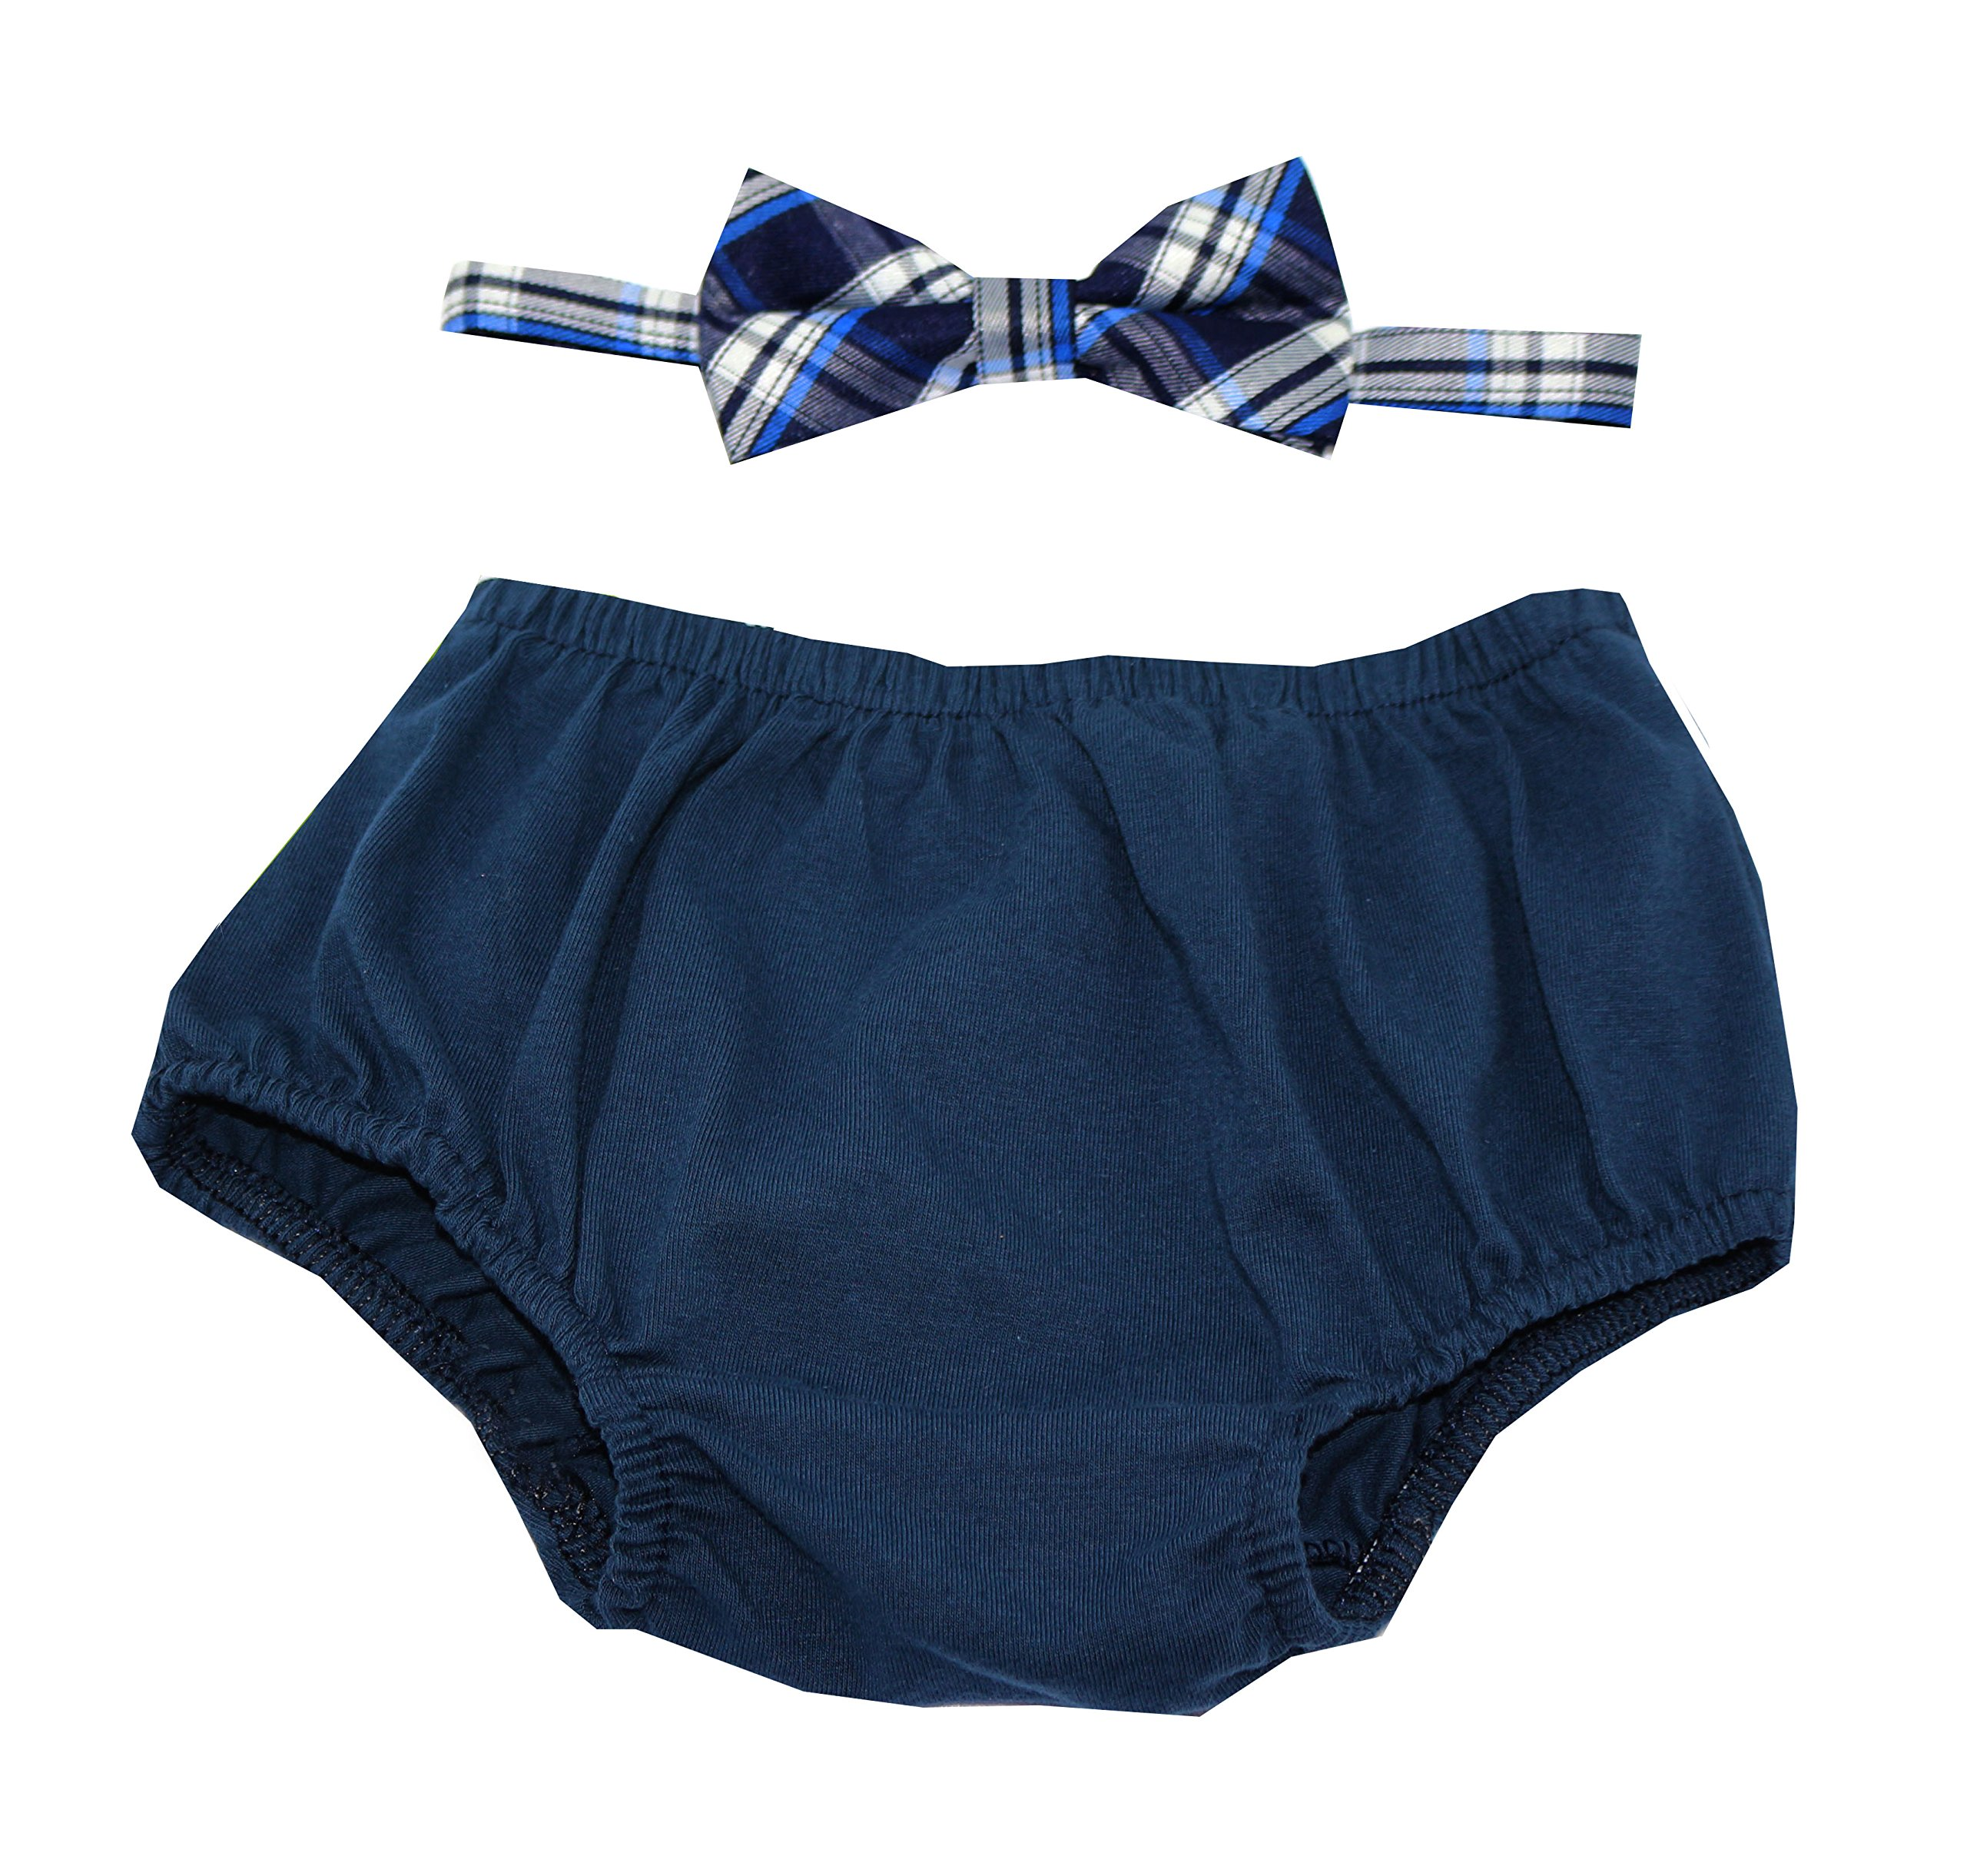 Cake Smash Outfit Boy First Birthday Includes Bloomers And Bow Tie Navy Blue Bloomer